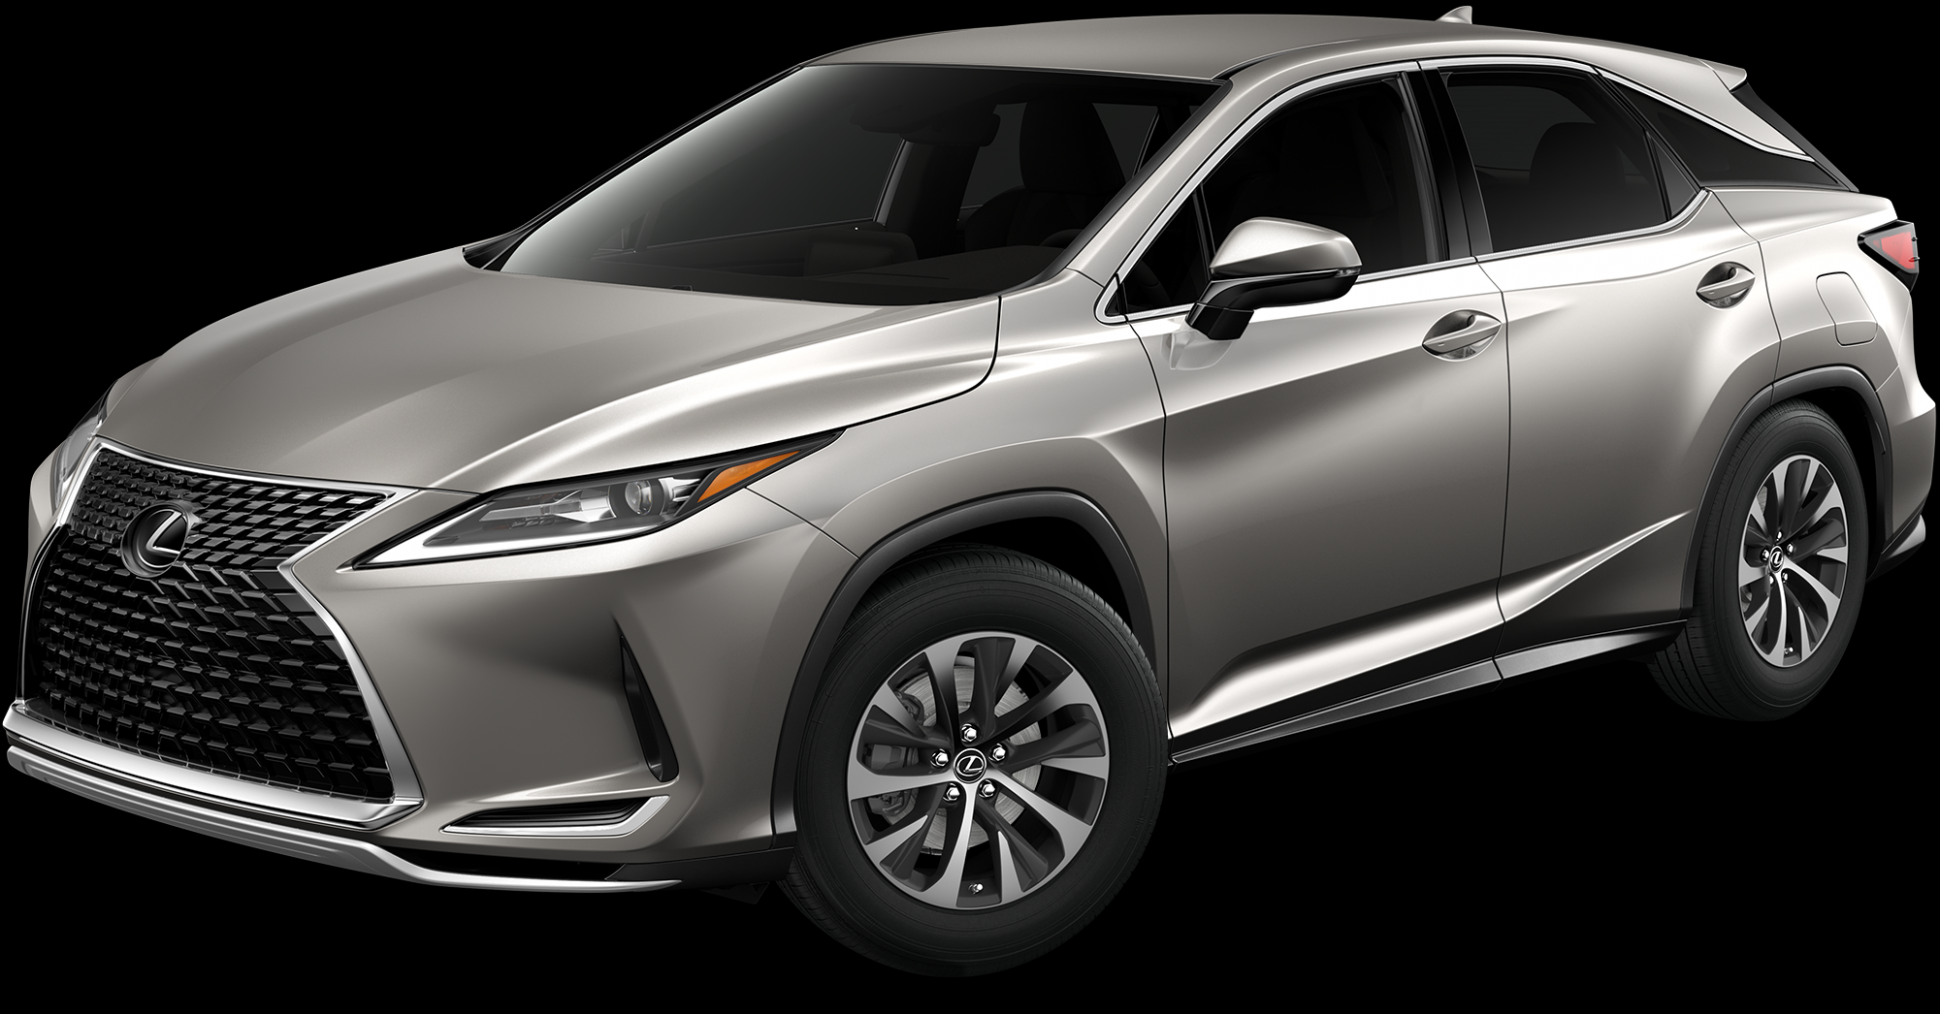 9 Lexus RX 9 Incentives, Specials & Offers in Dallas TX